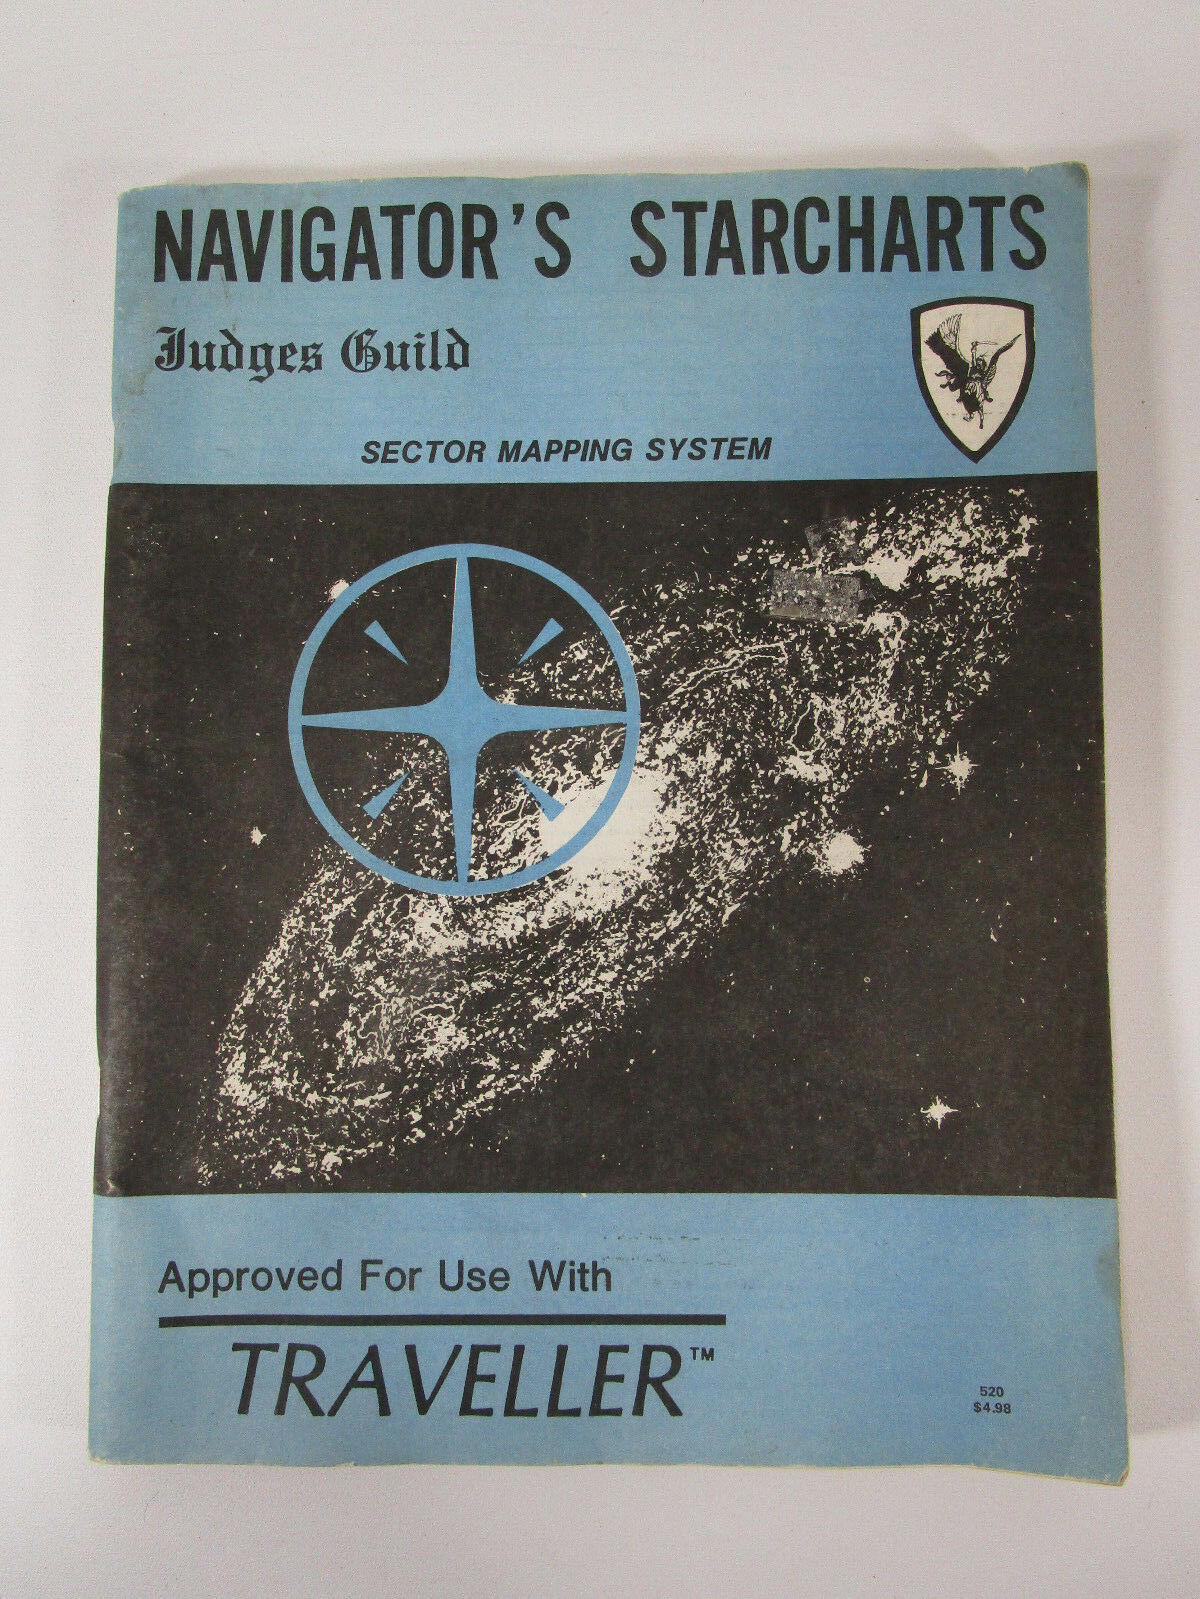 outlet online Vintage Navigator's estrellacharts estrellacharts estrellacharts judges guild sector mapping system traveller RPG  supporto al dettaglio all'ingrosso